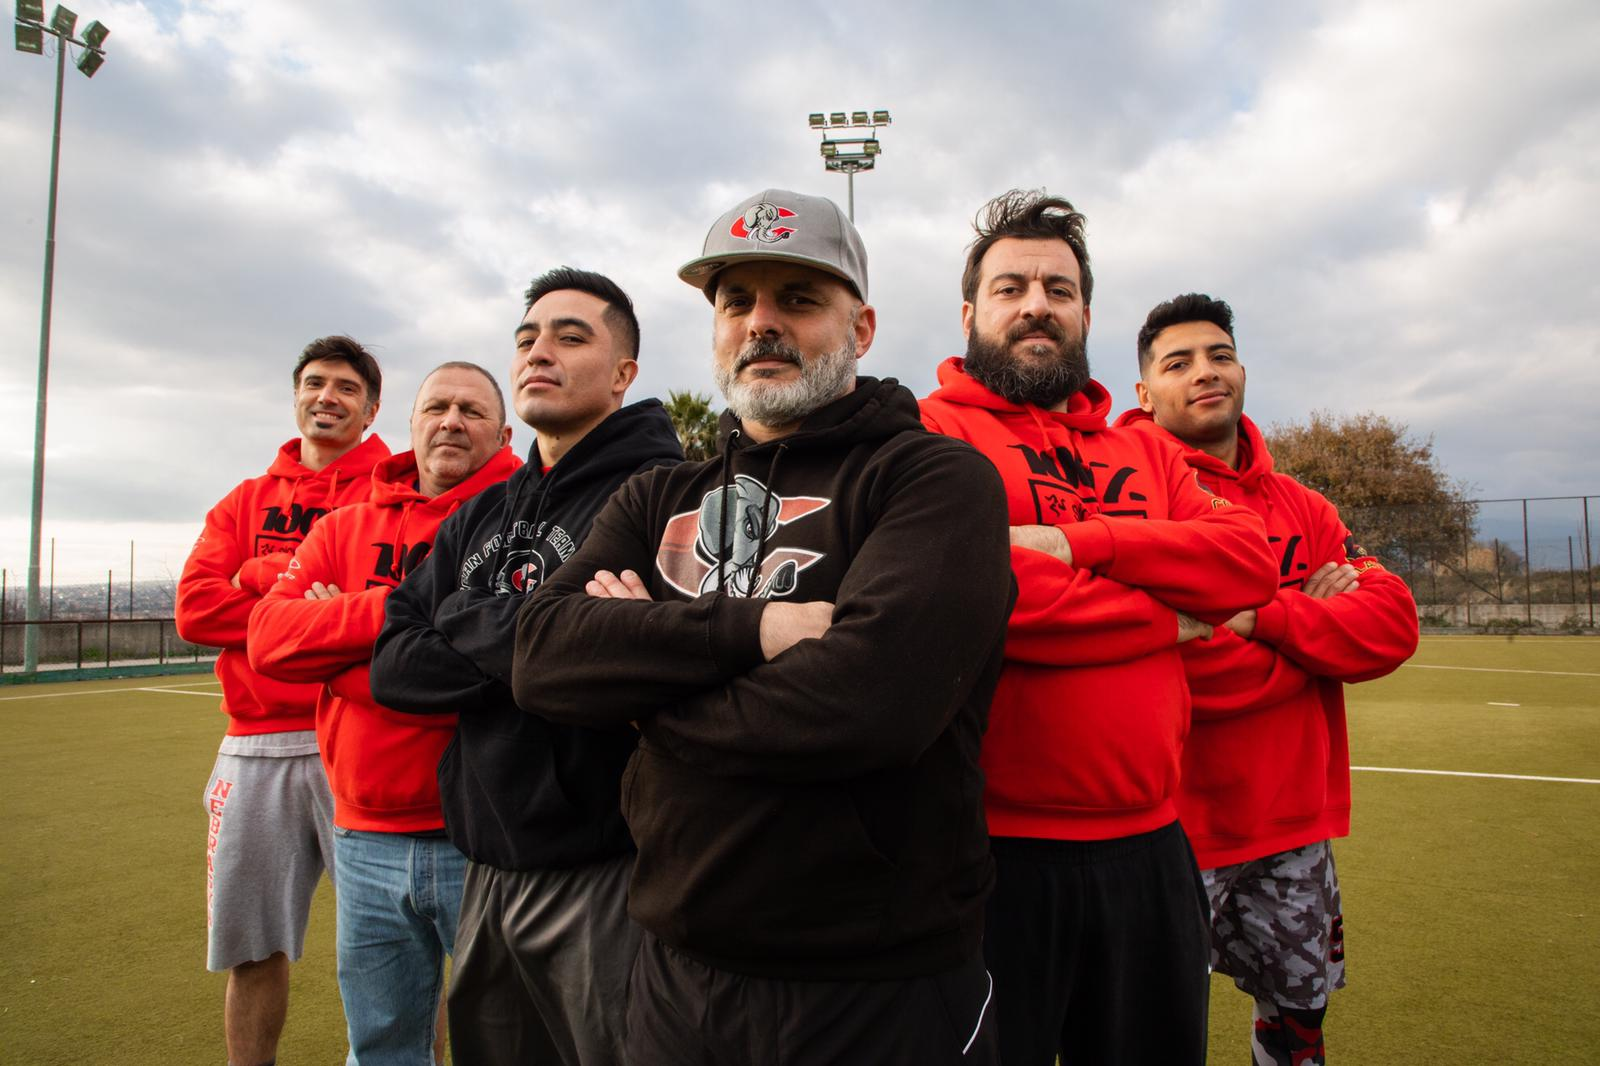 Coaching Staff Elephants Head Coach: Renato Gargiulo Offense Coordinator: Rodrido Rios Martinez Offense Assistant: Fortunato Camarda Defense Coordinator: Gianmarco Pecoraro Defense Assistant: Claudio Caruso